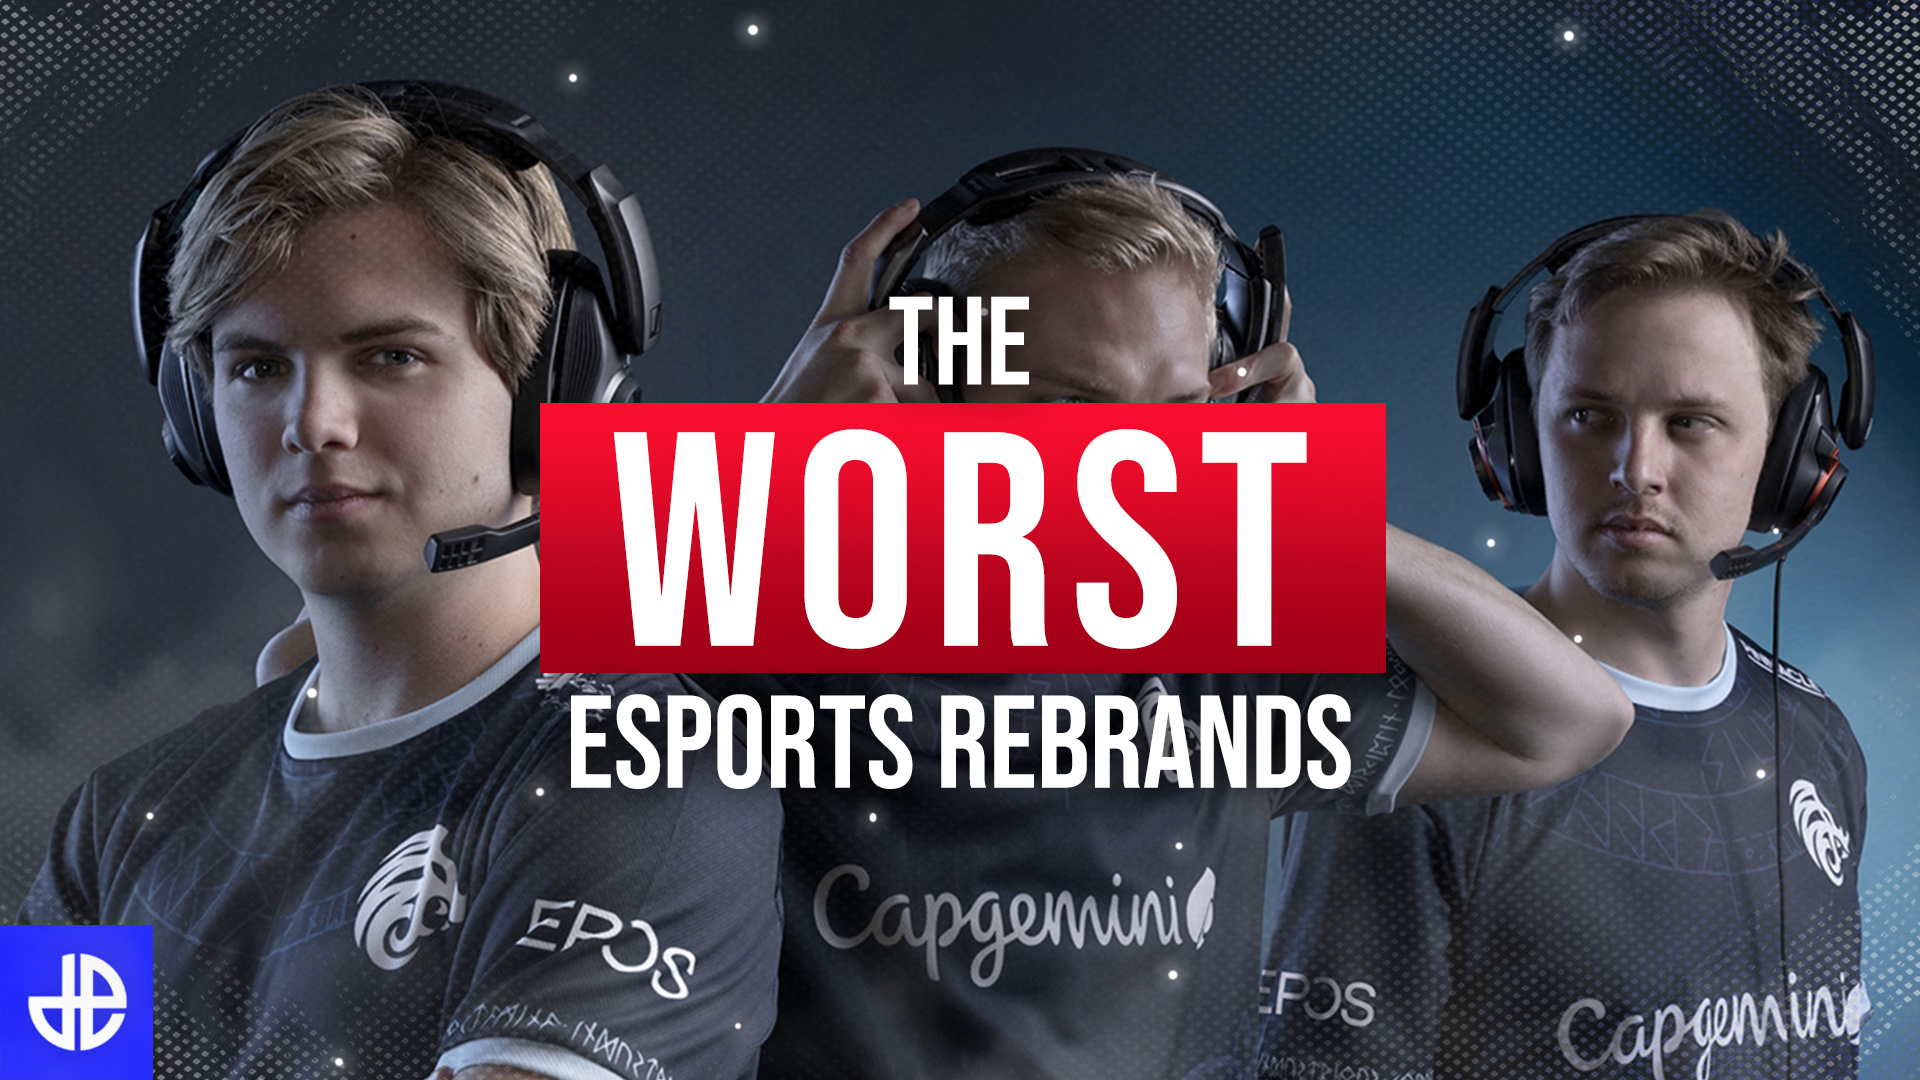 The worst esports rebrands